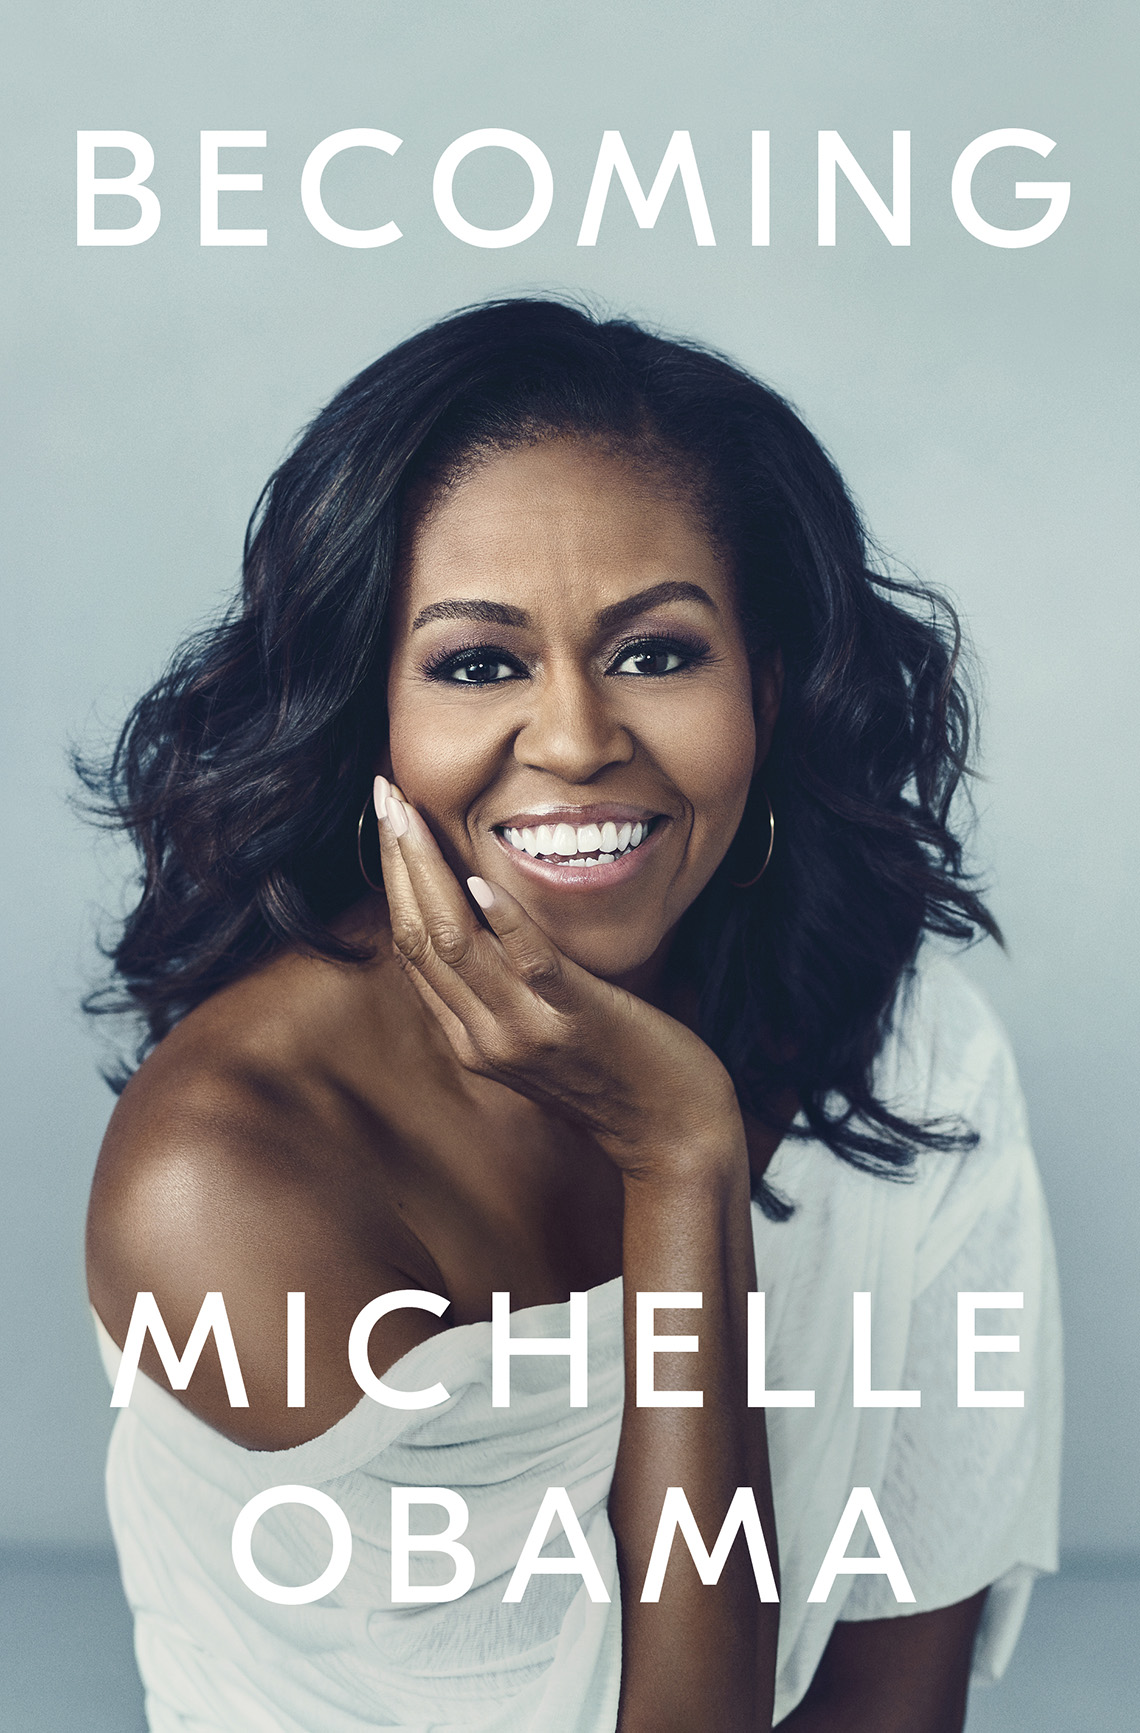 """Book cover reads """"Becoming, Michelle Obama"""""""